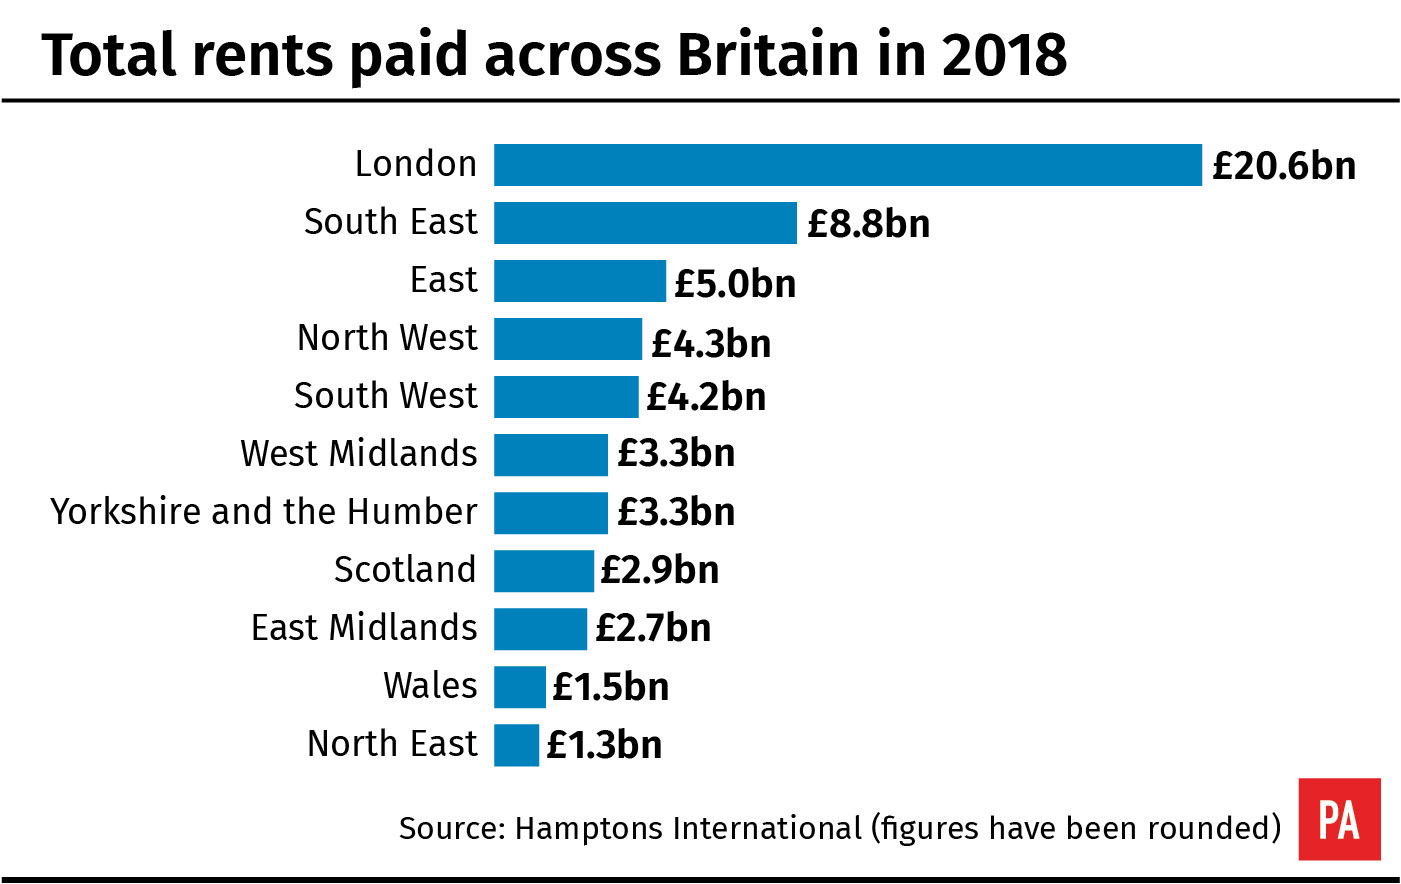 Total rents paid across Britain in 2018